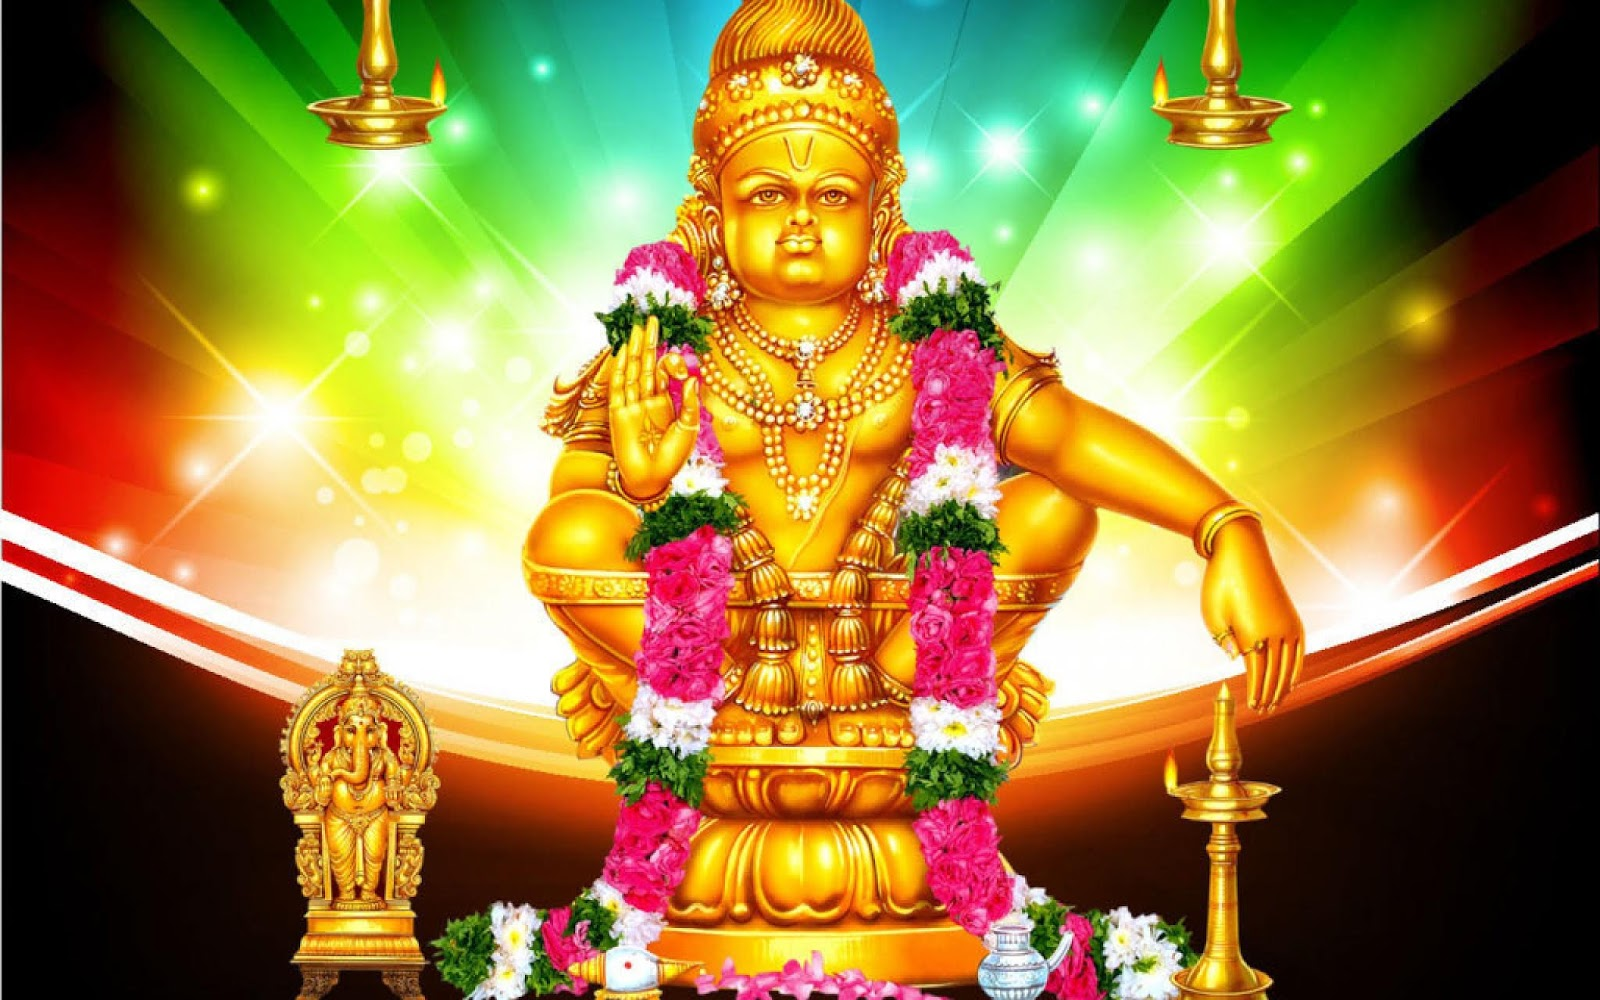 lovable images god ayyappa pictures free download lord ayyappa wallpapers swamy ayyappa images lovable images god ayyappa pictures